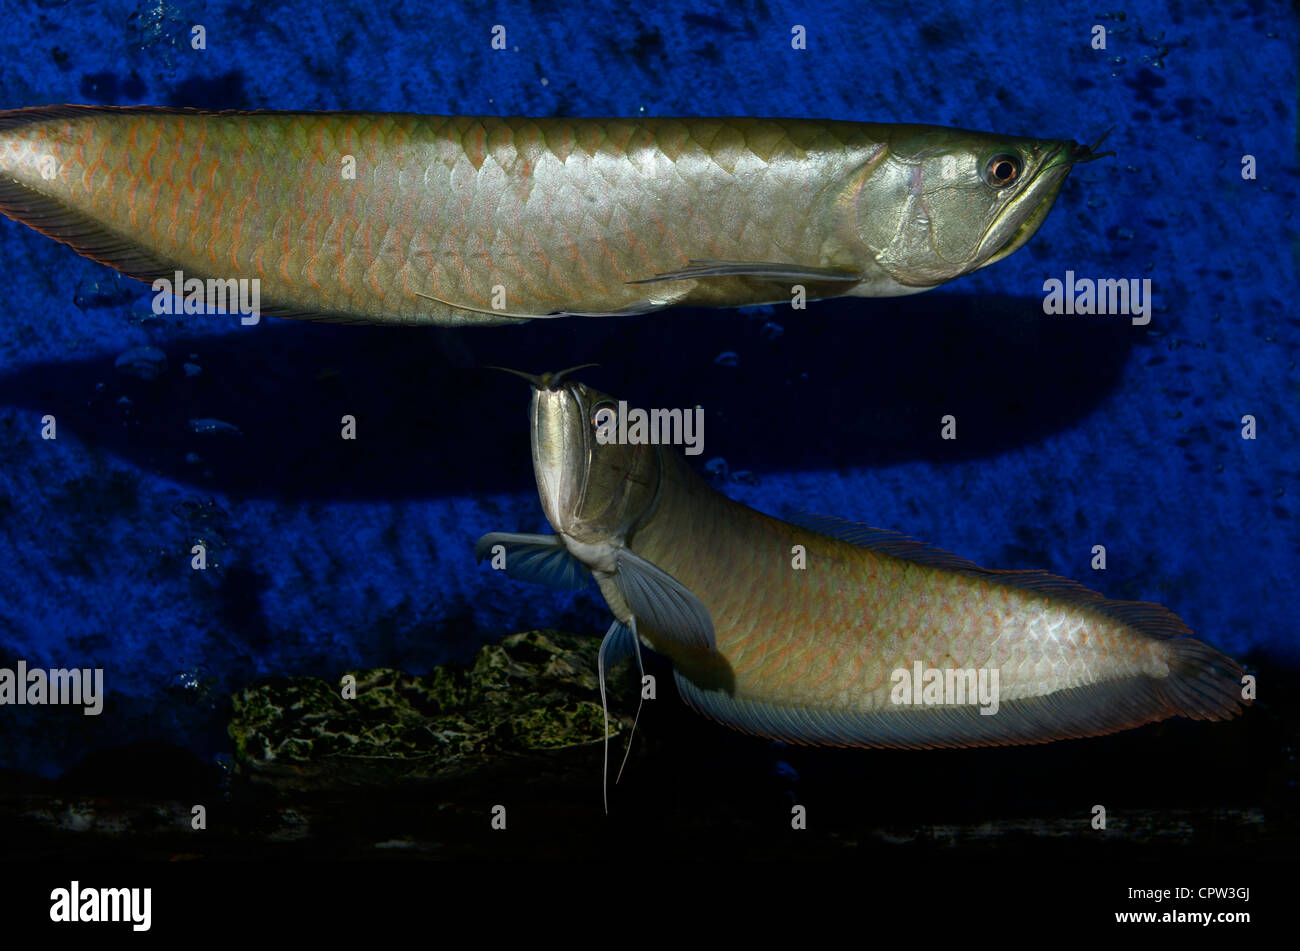 Freshwater fish amazon - Two Silver Arowana Freshwater Bonytongue Fish From The Amazon River Swimming In An Aquarium Stock